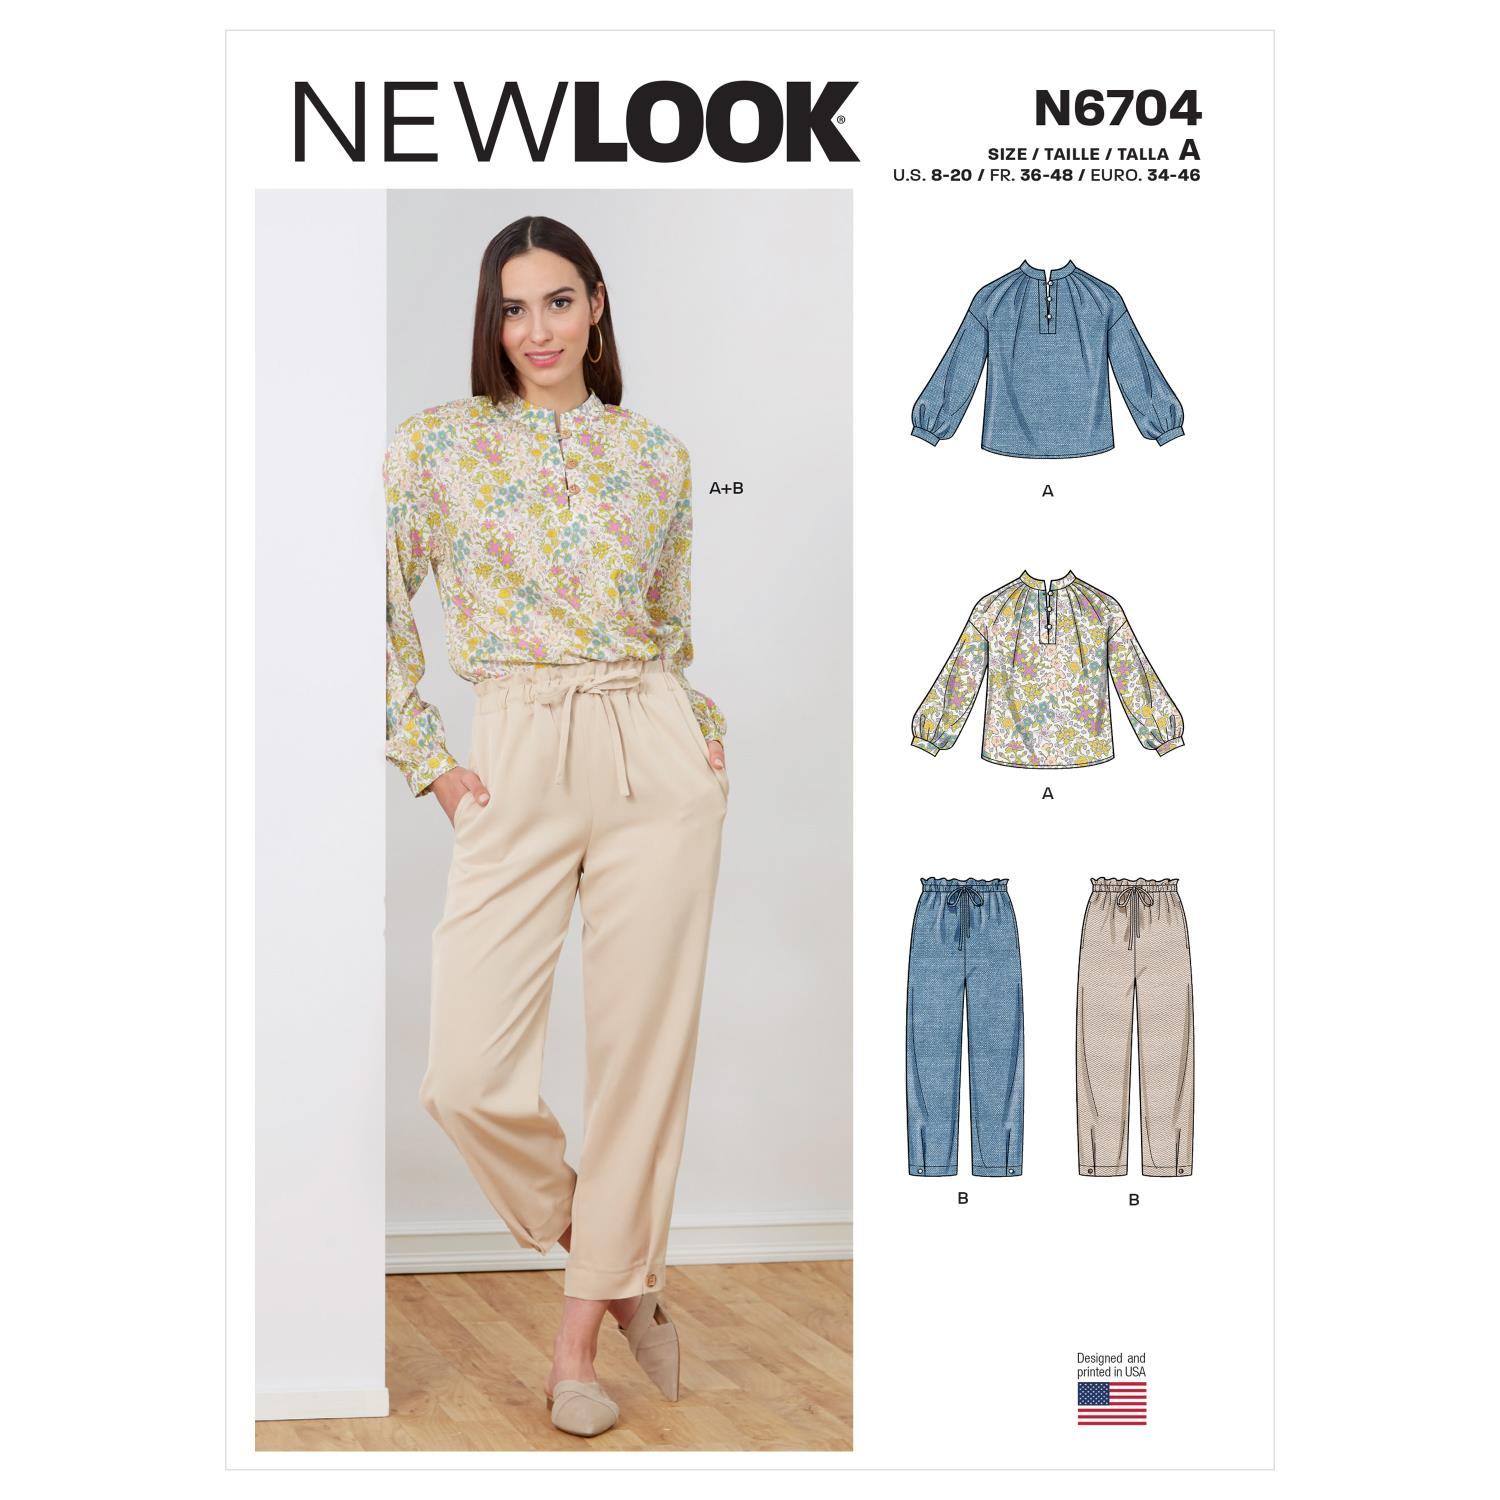 New Look Sewing Pattern N6704 Misses' Top and Pull-On Pant